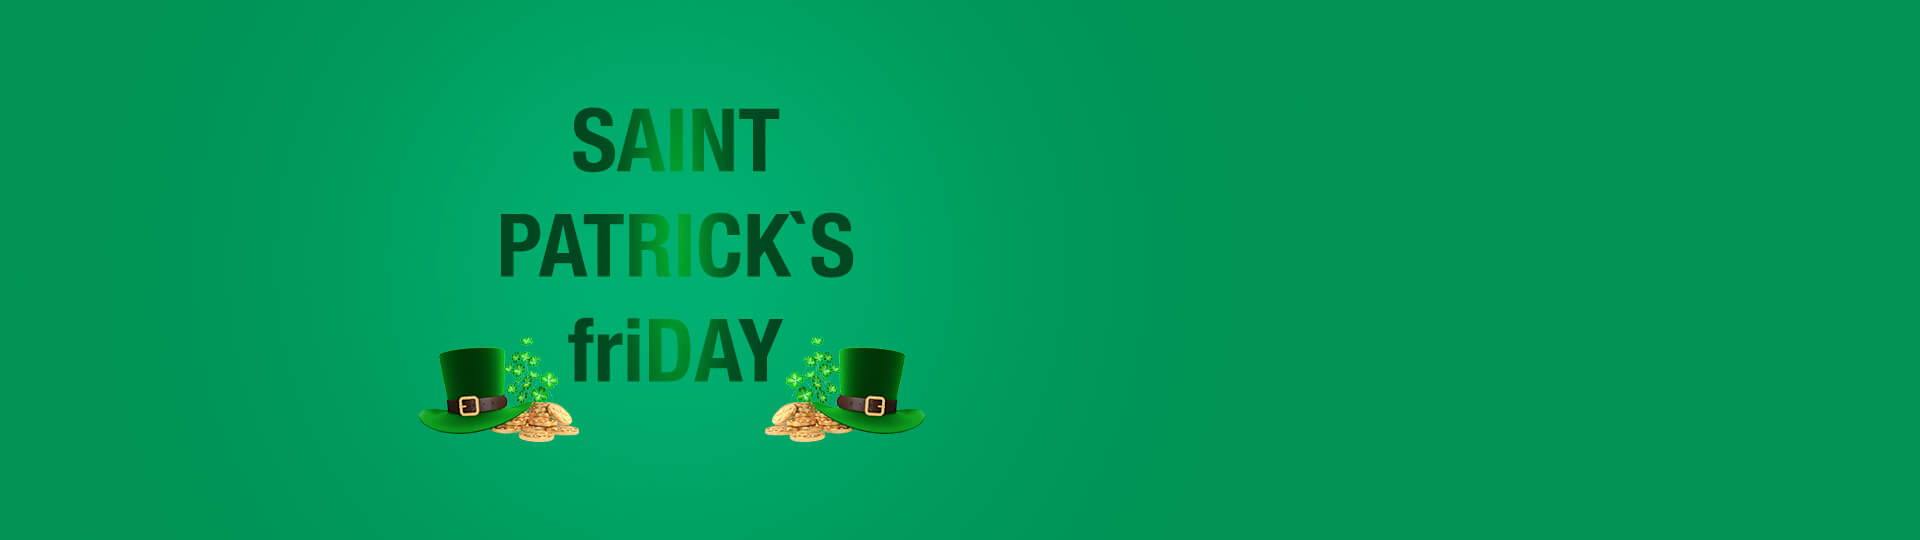 «ST. PATRICK's friDAY»